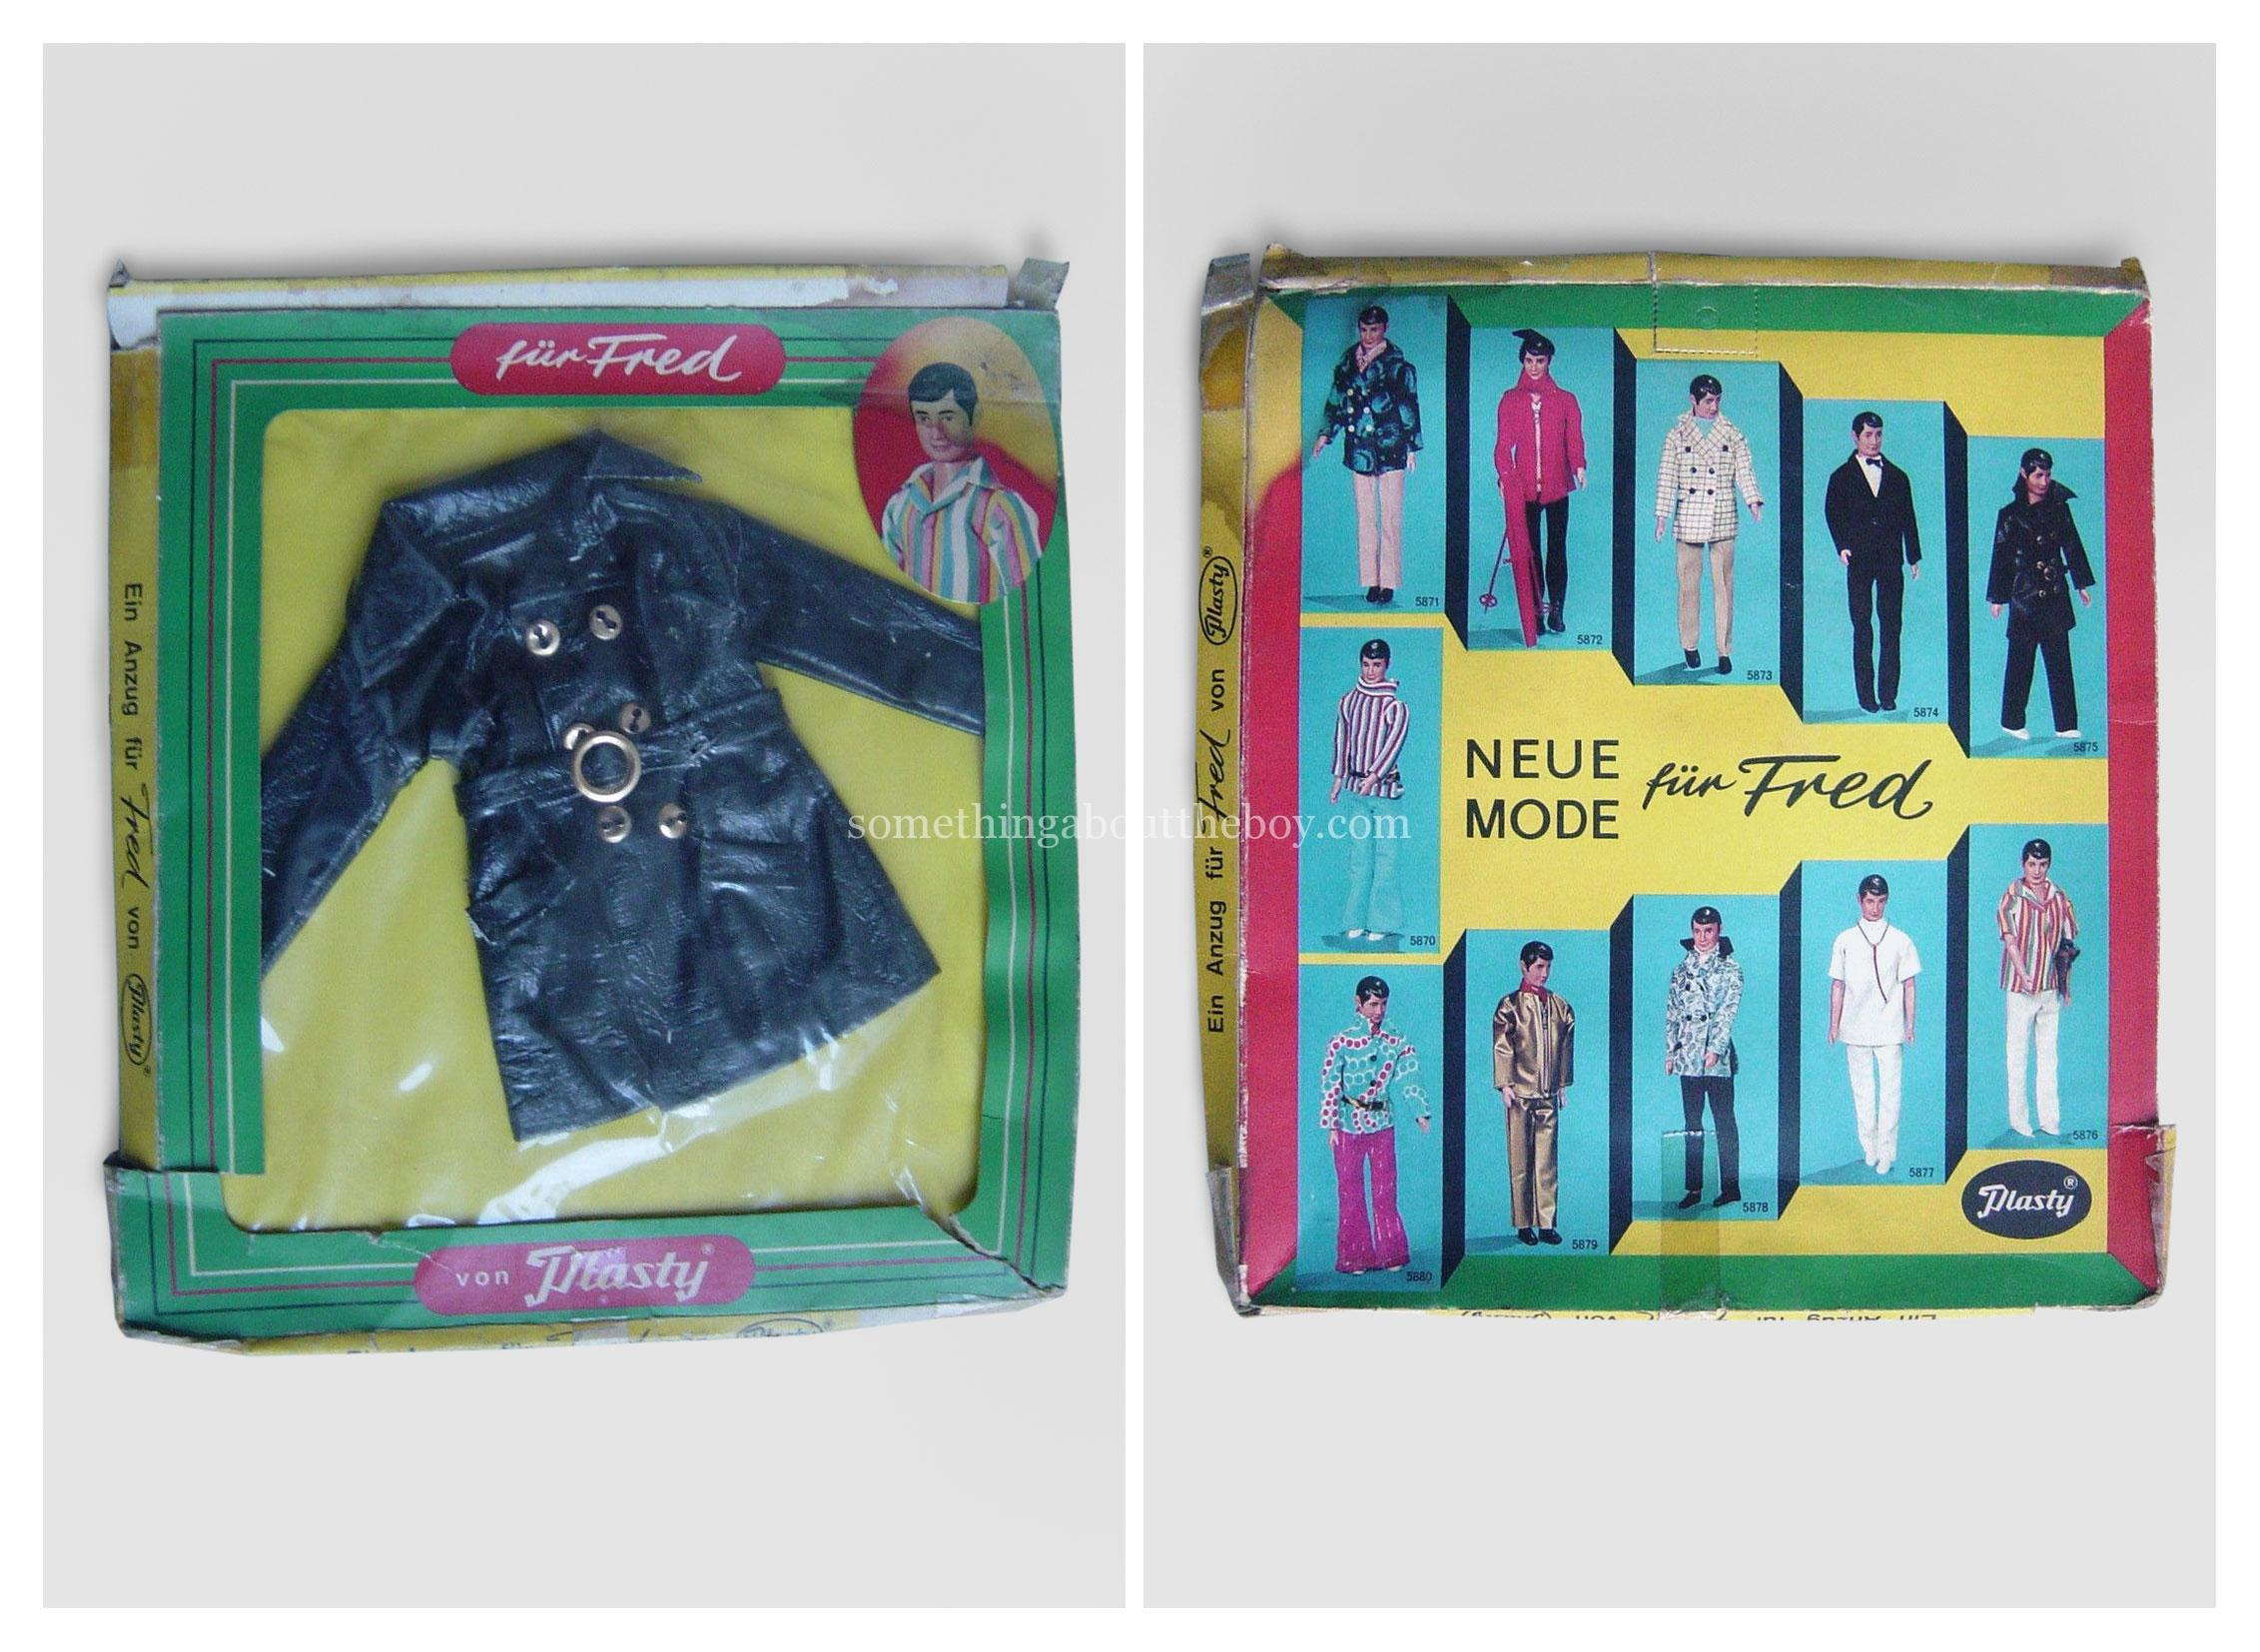 1972 Fred outfit #5875 by Plasty (Germany)